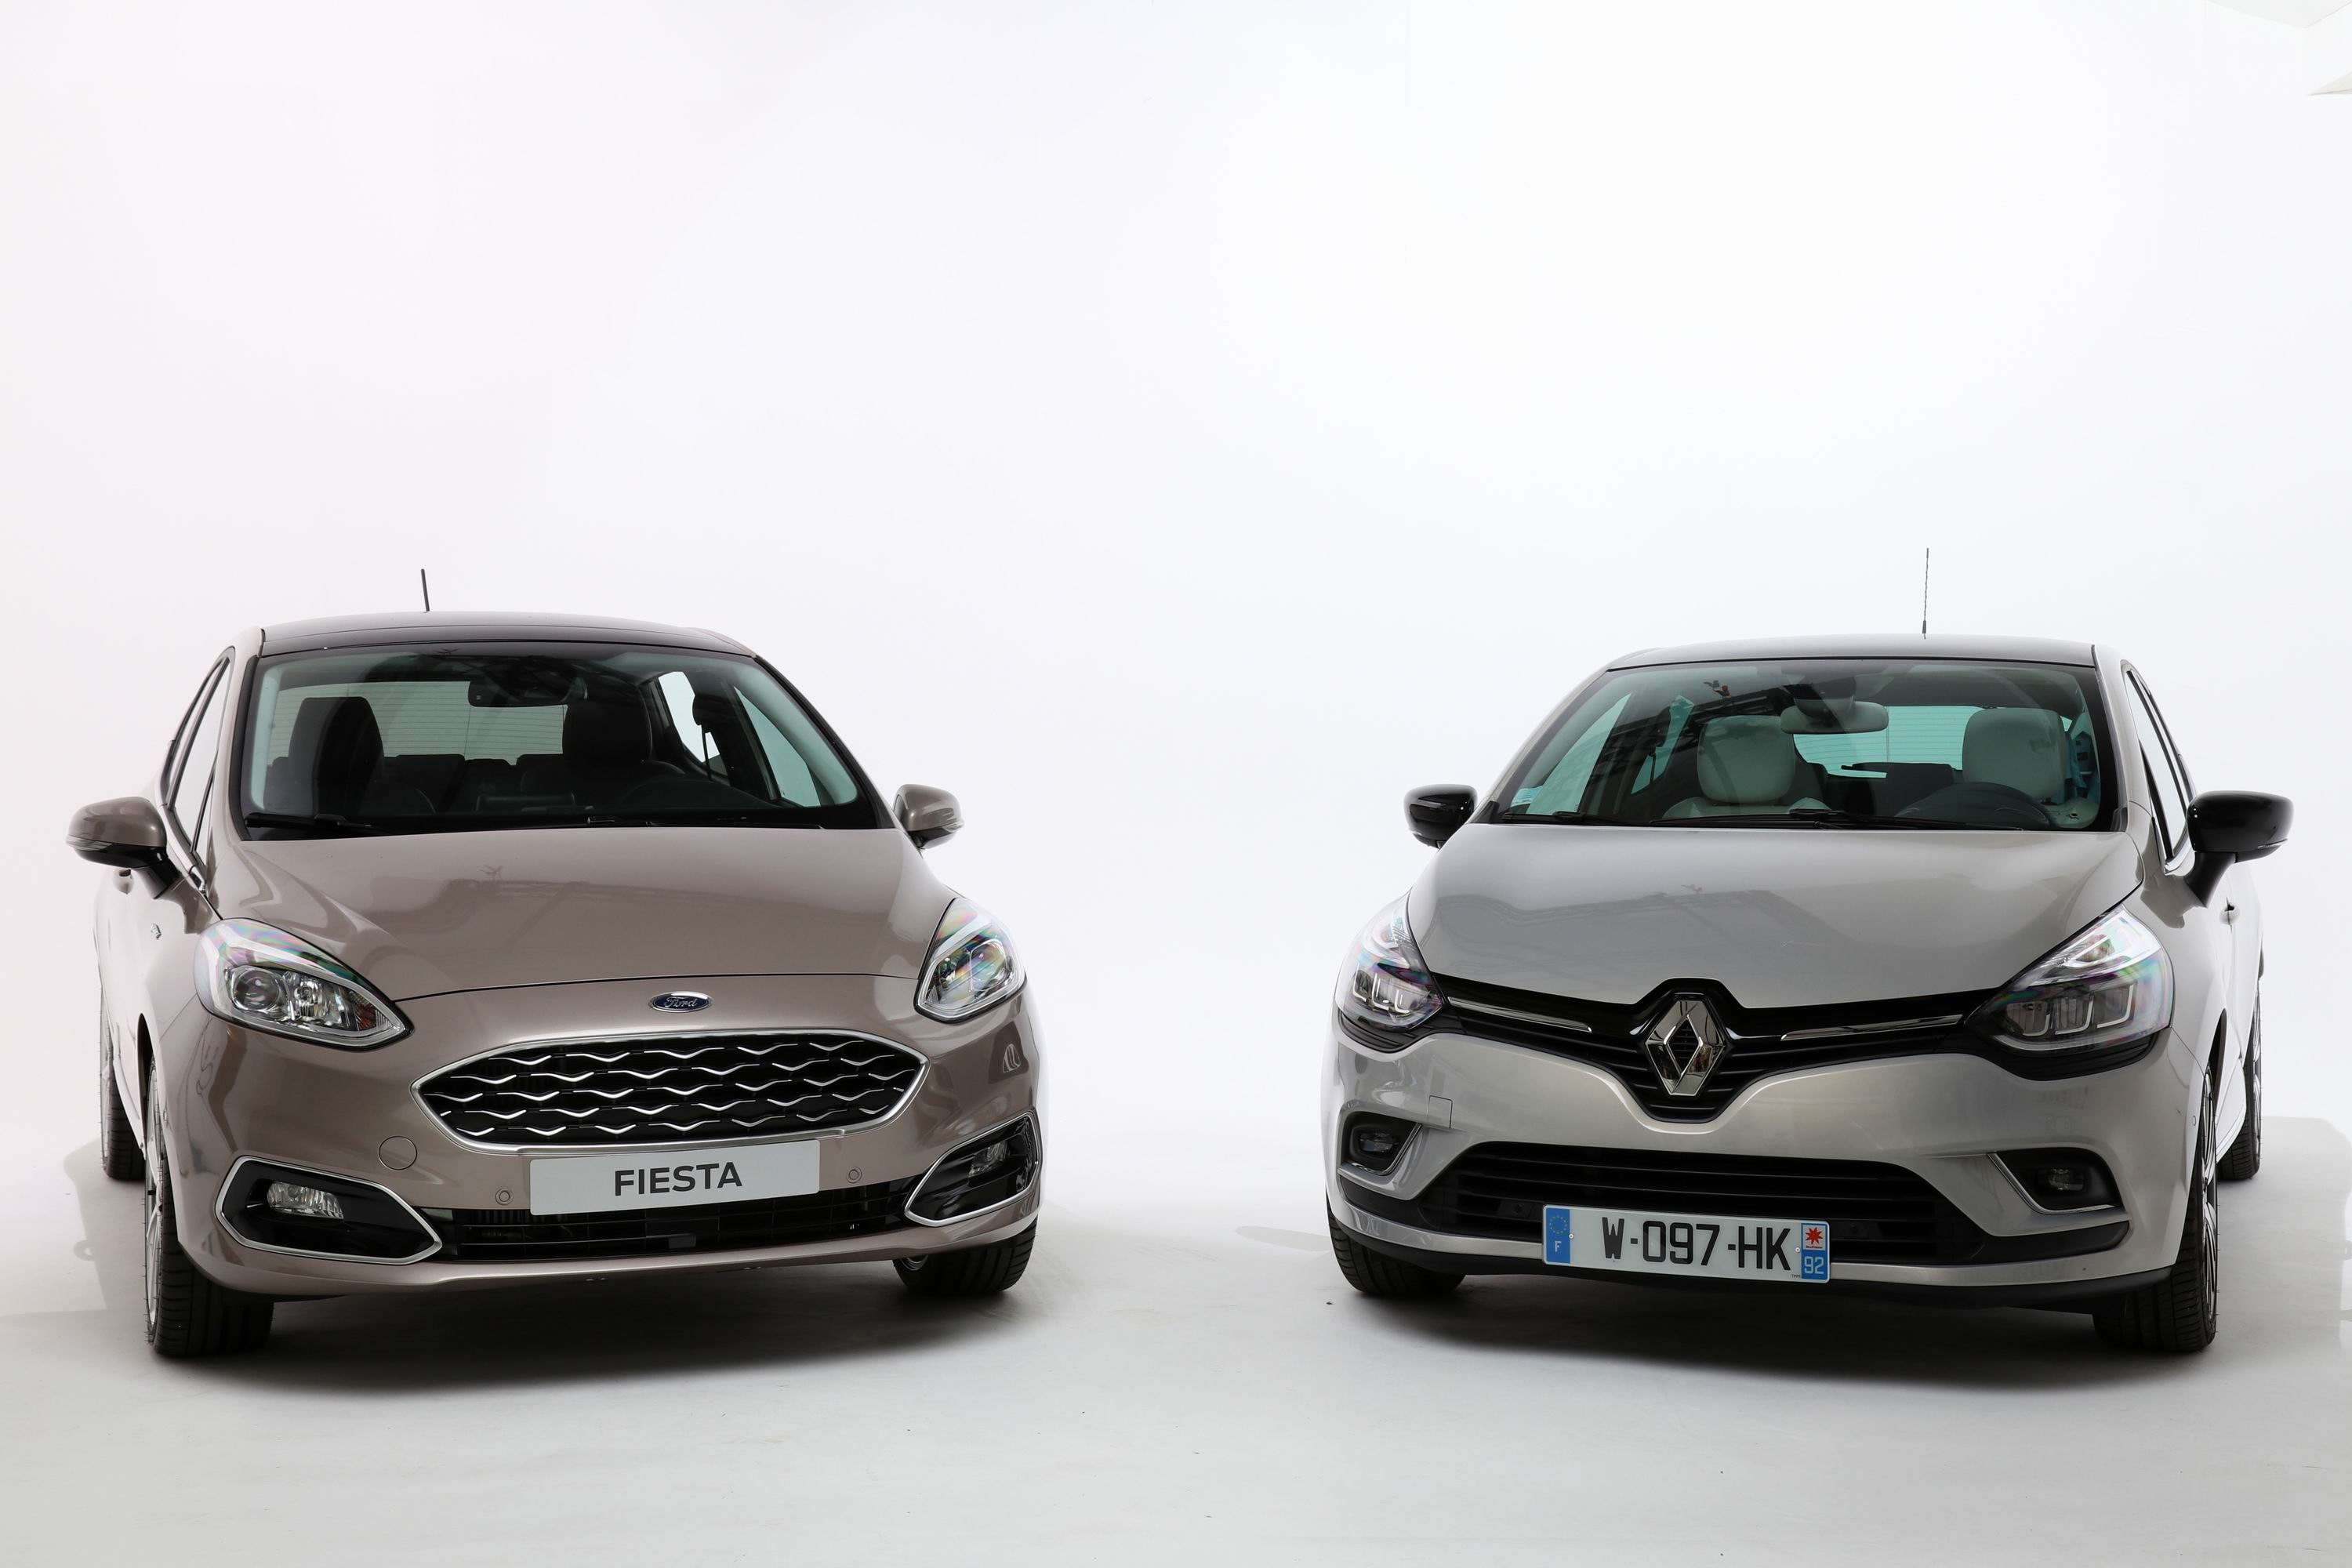 comparatif statique vid o ford fiesta vs renault clio haute couture